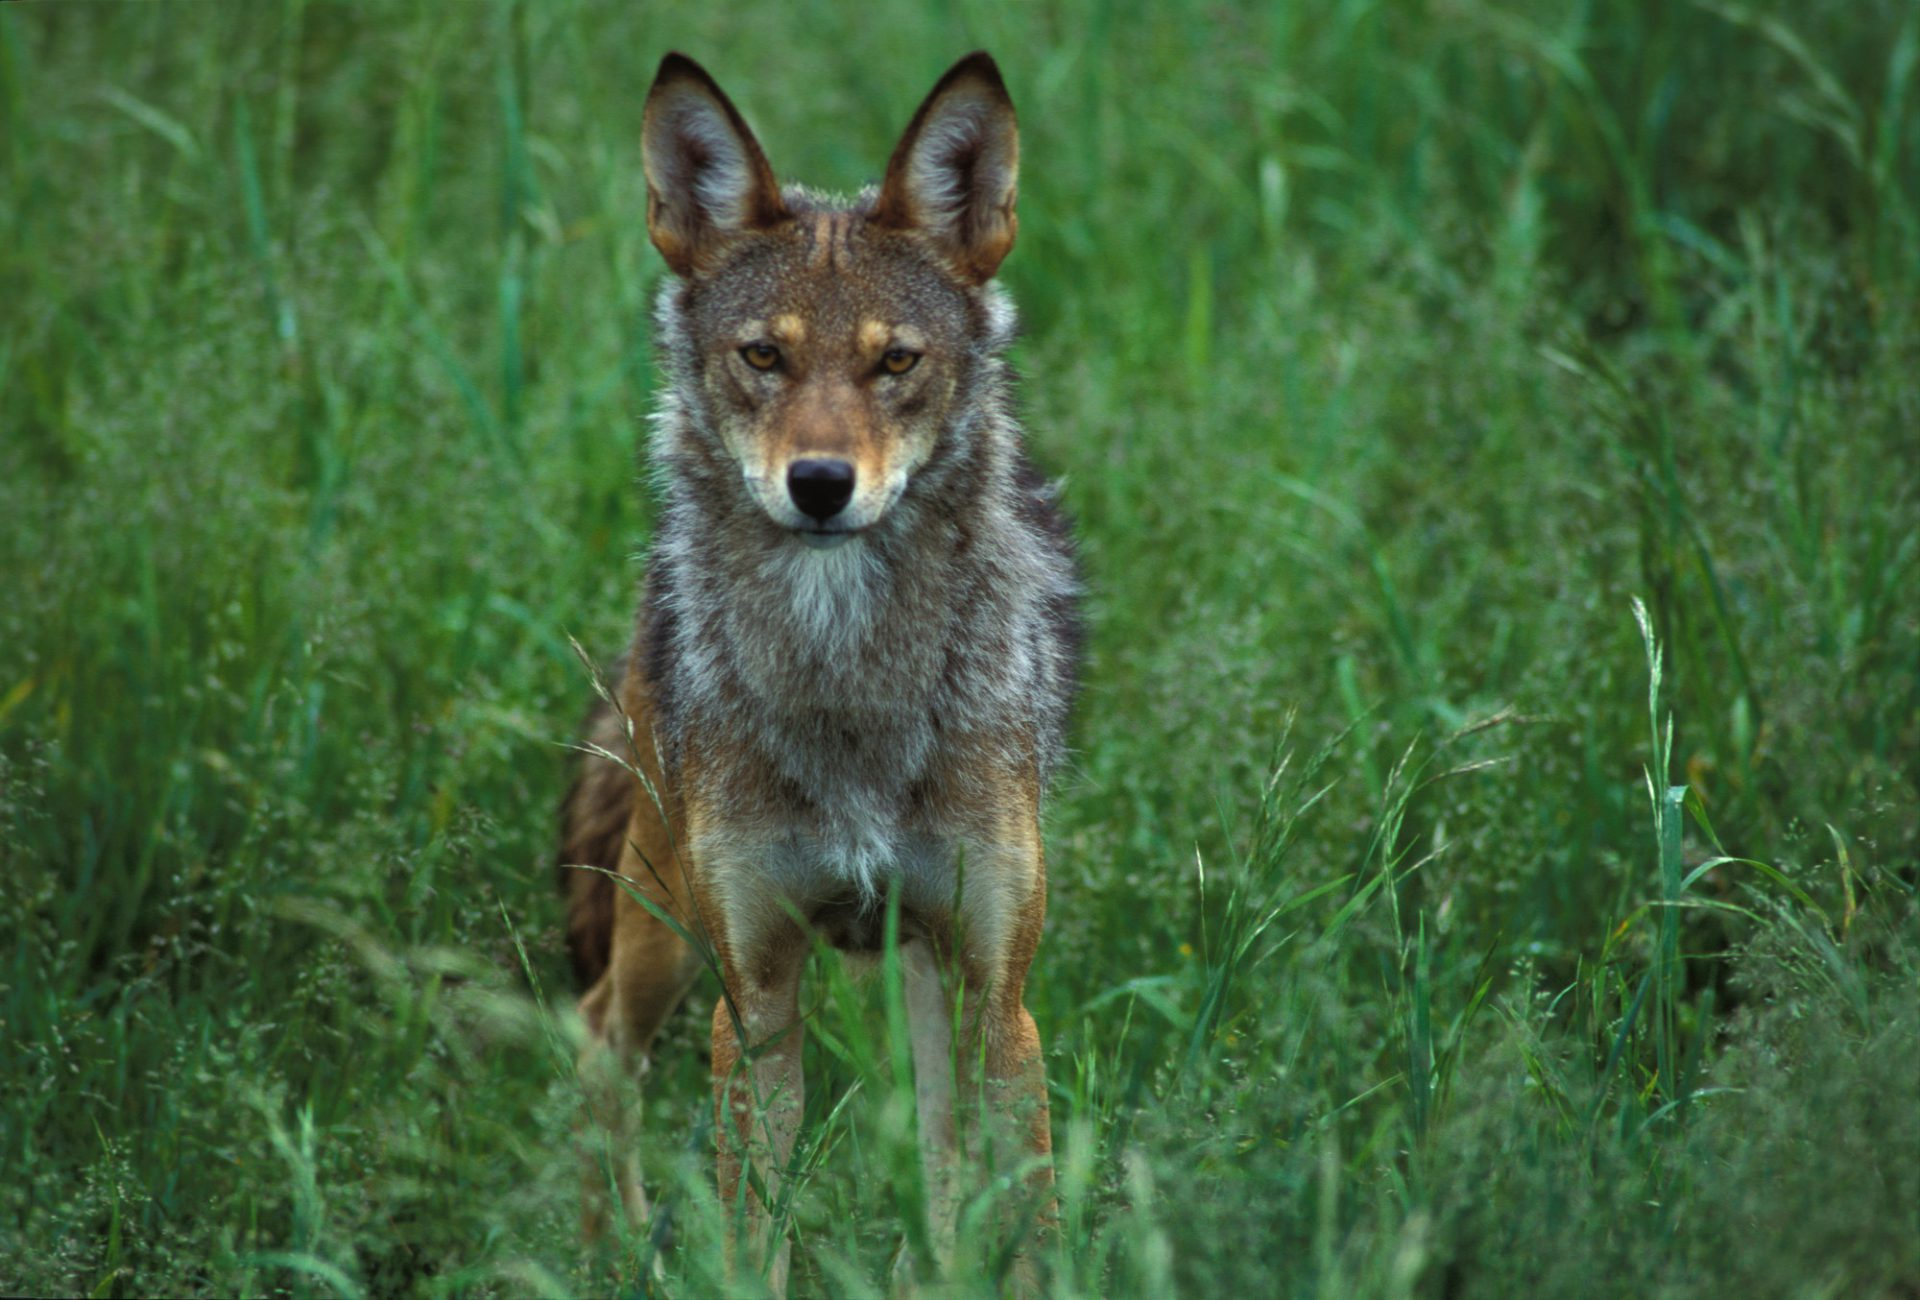 Photo: A red wolf stares down the camera at the Tacoma Park Zoo's captive breeding facility in Washington state.